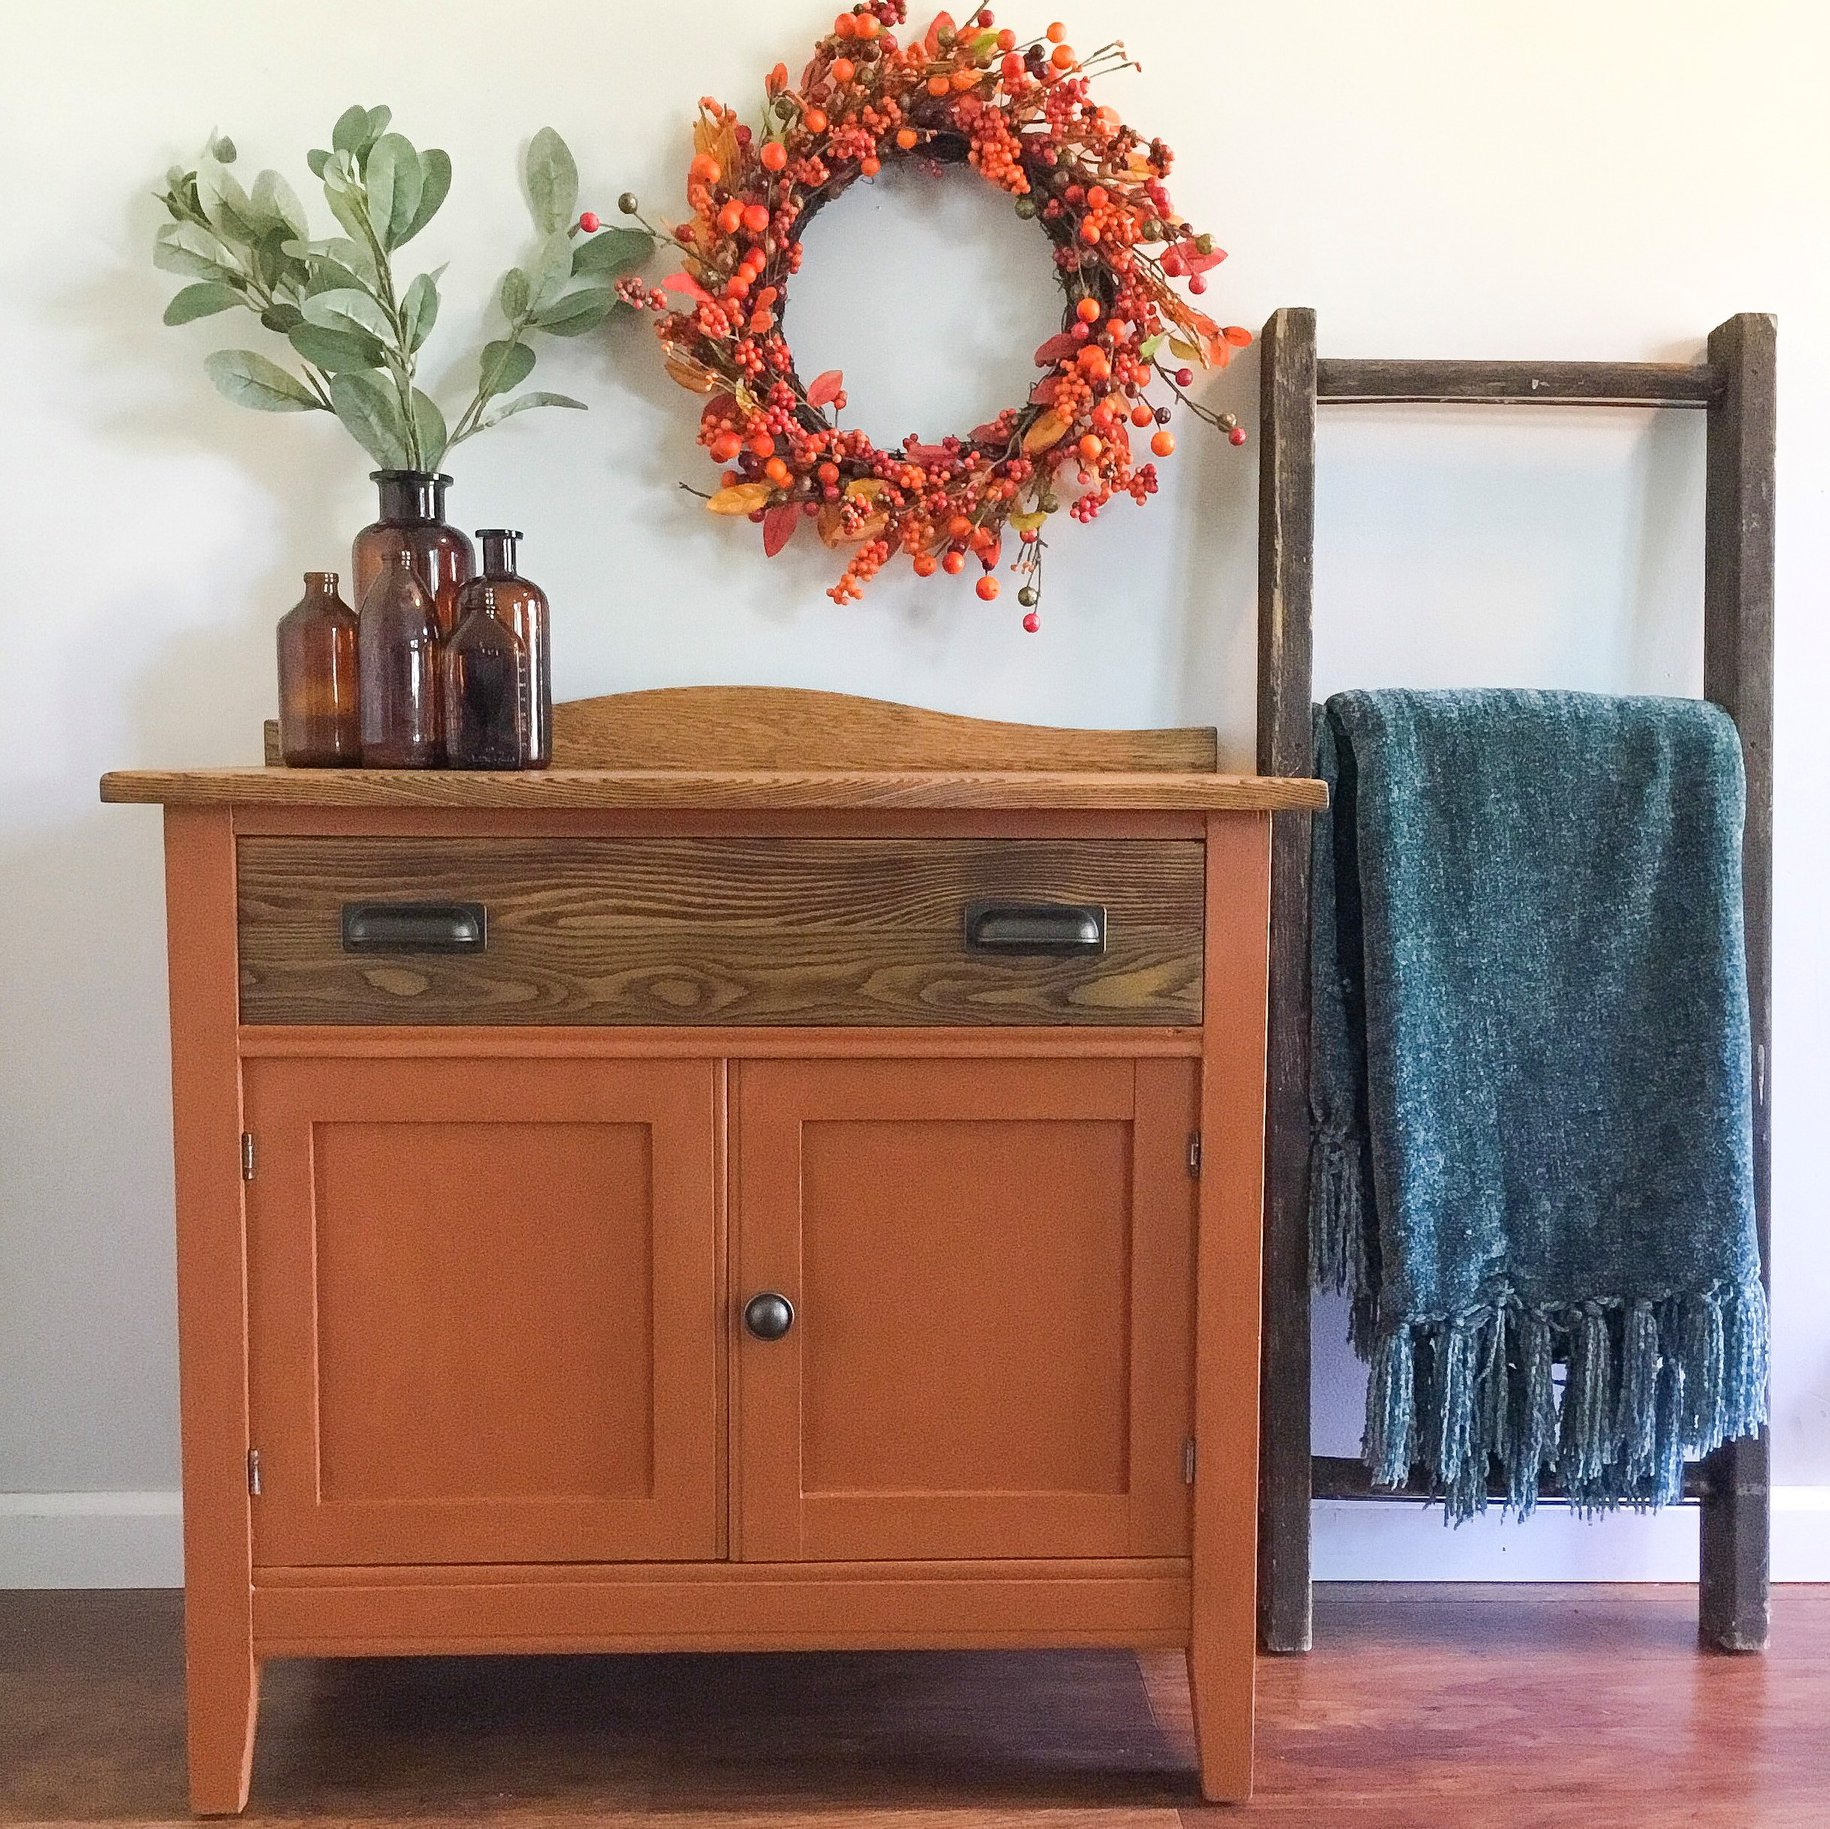 Farmhouse Cabinet in With A Twist with Stained Wood Drawer and Wreath